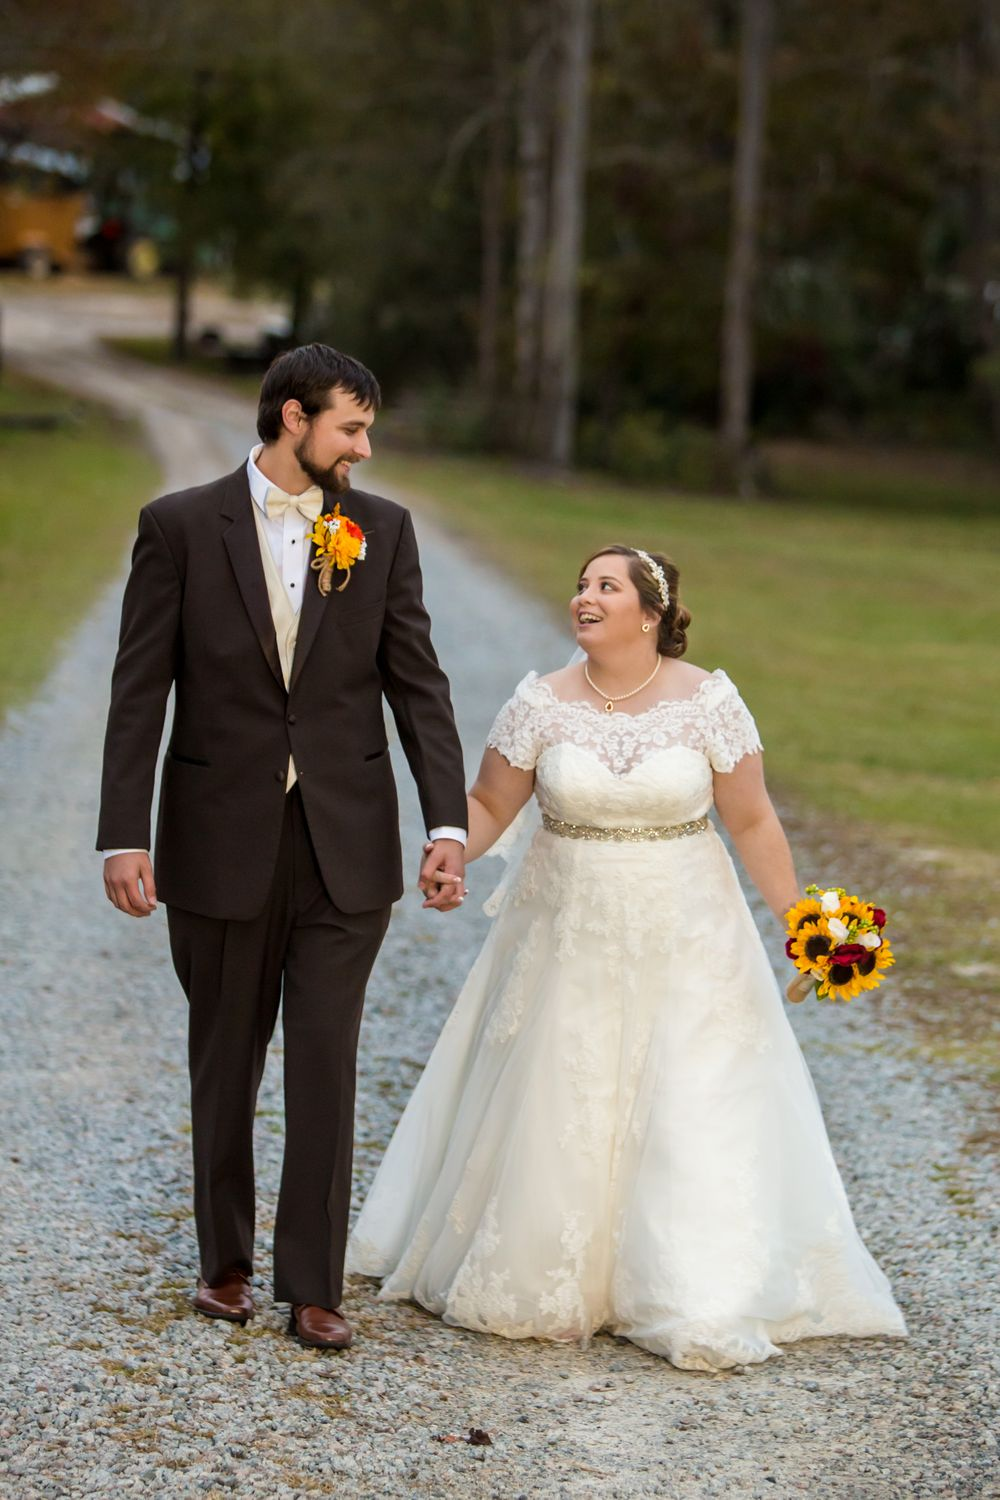 Becca and Kyle walk down a gravel road following their wedding at T&S Farm in Leesville, SC